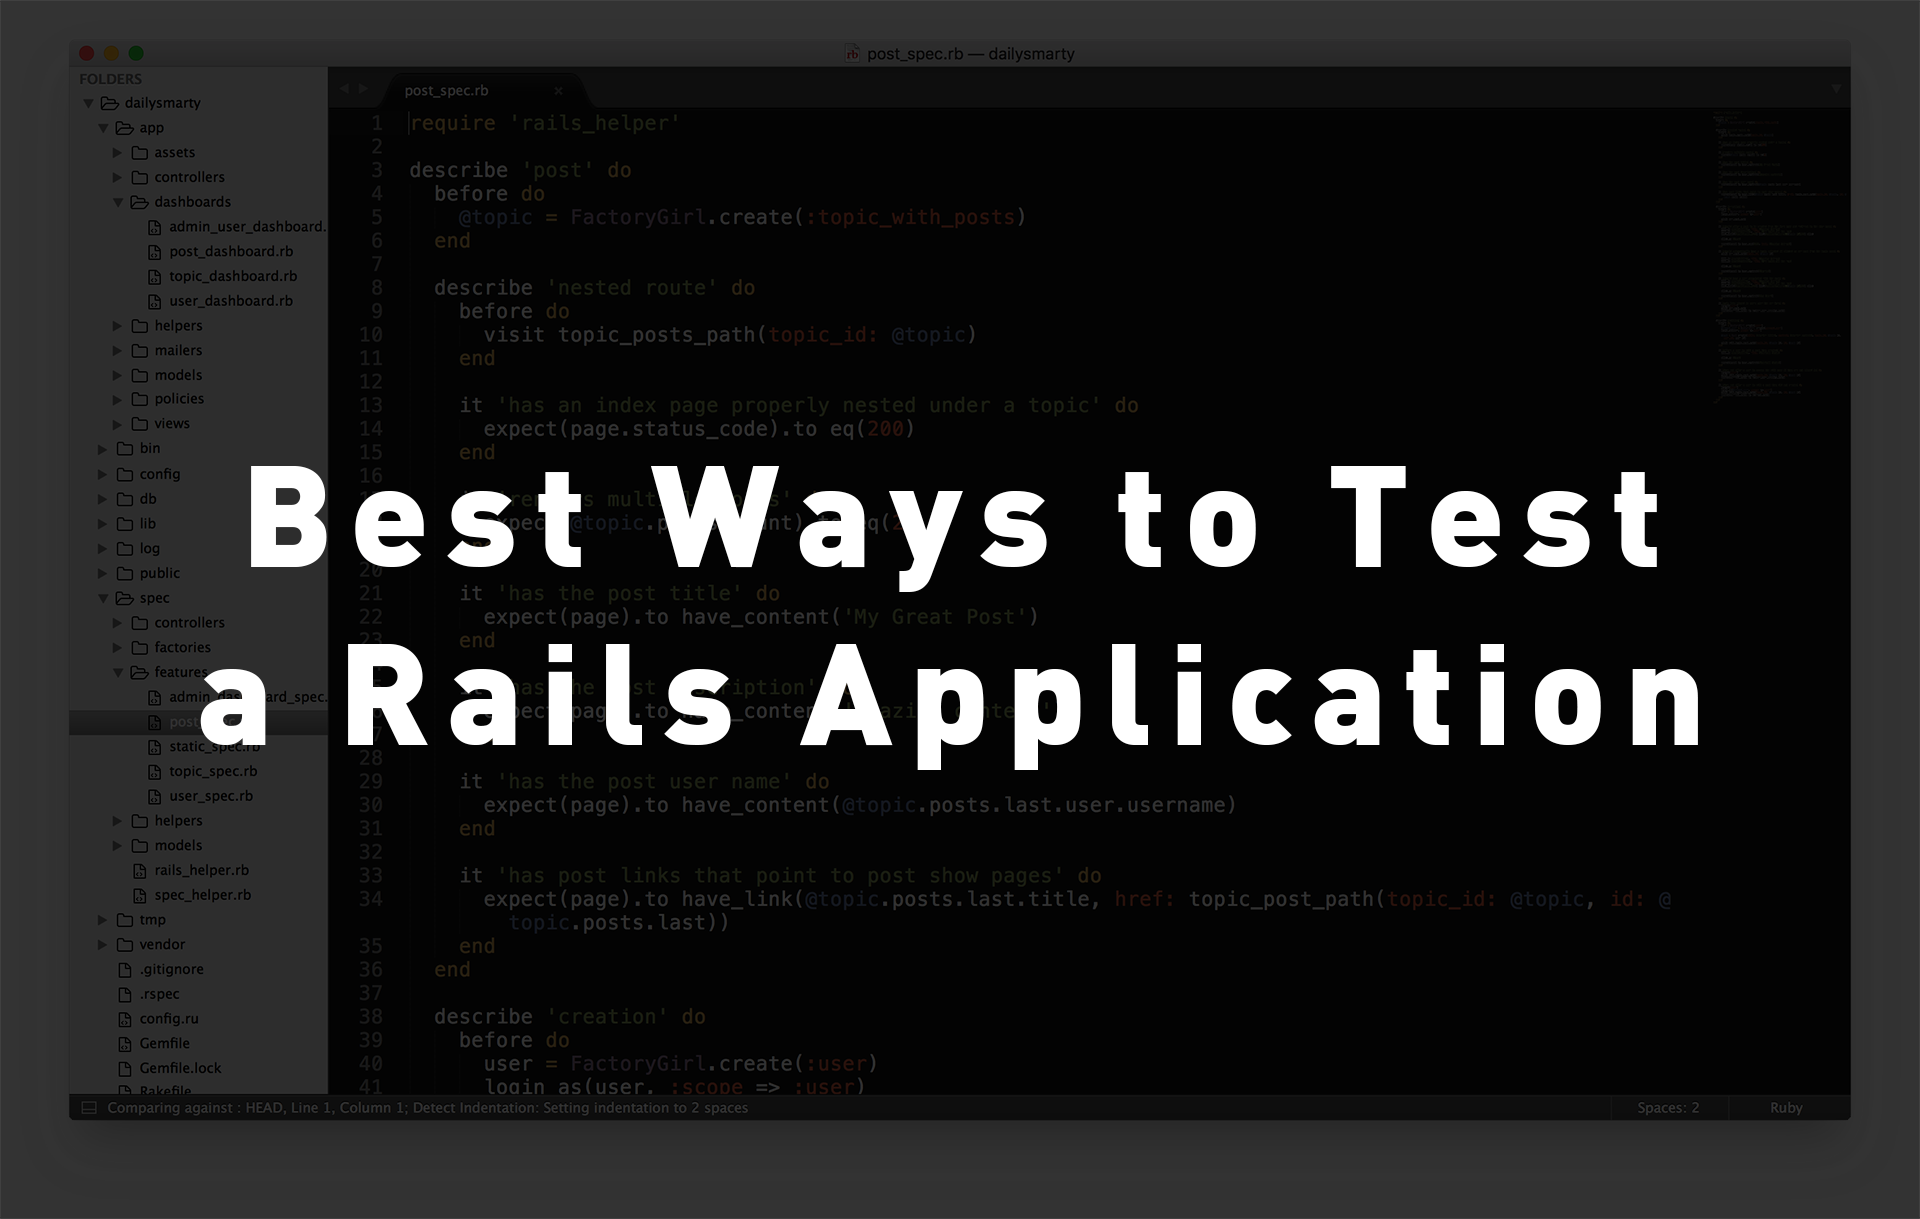 Best Ways to Test a Rails Application